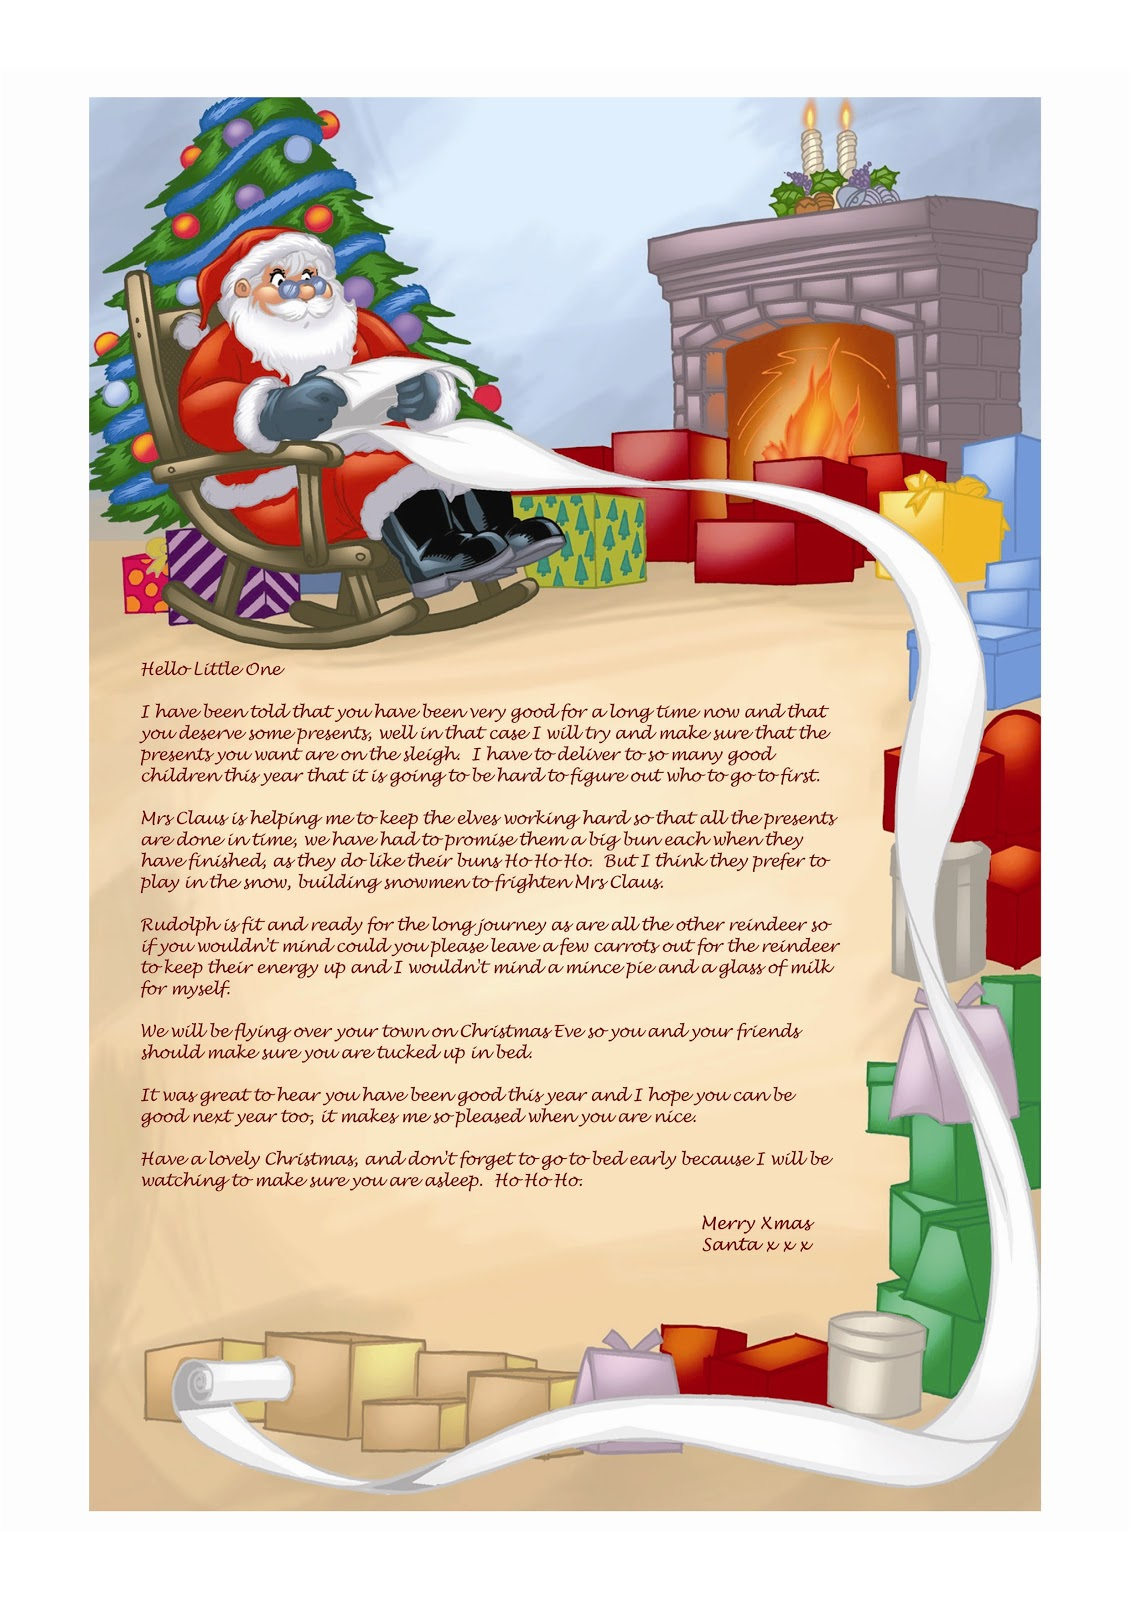 Pin Free Printable Letters From Santa Rental Agreements on Pinterest